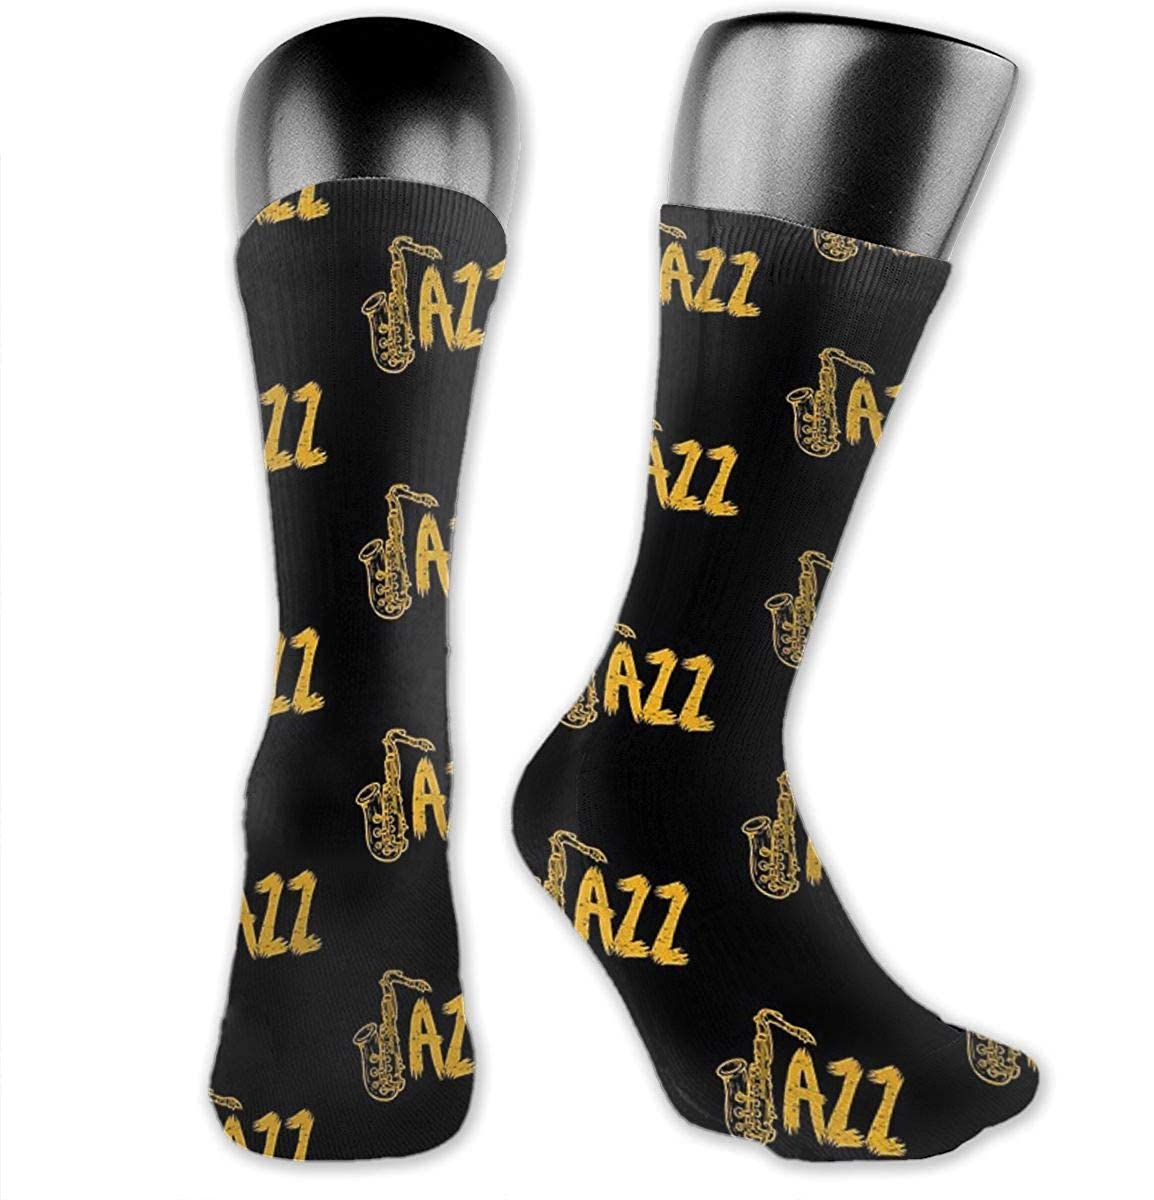 Unisex Crazy Funny Jazz Saxophone Socks Colorful Running Sport Socks Novelty Casual Crew Socks